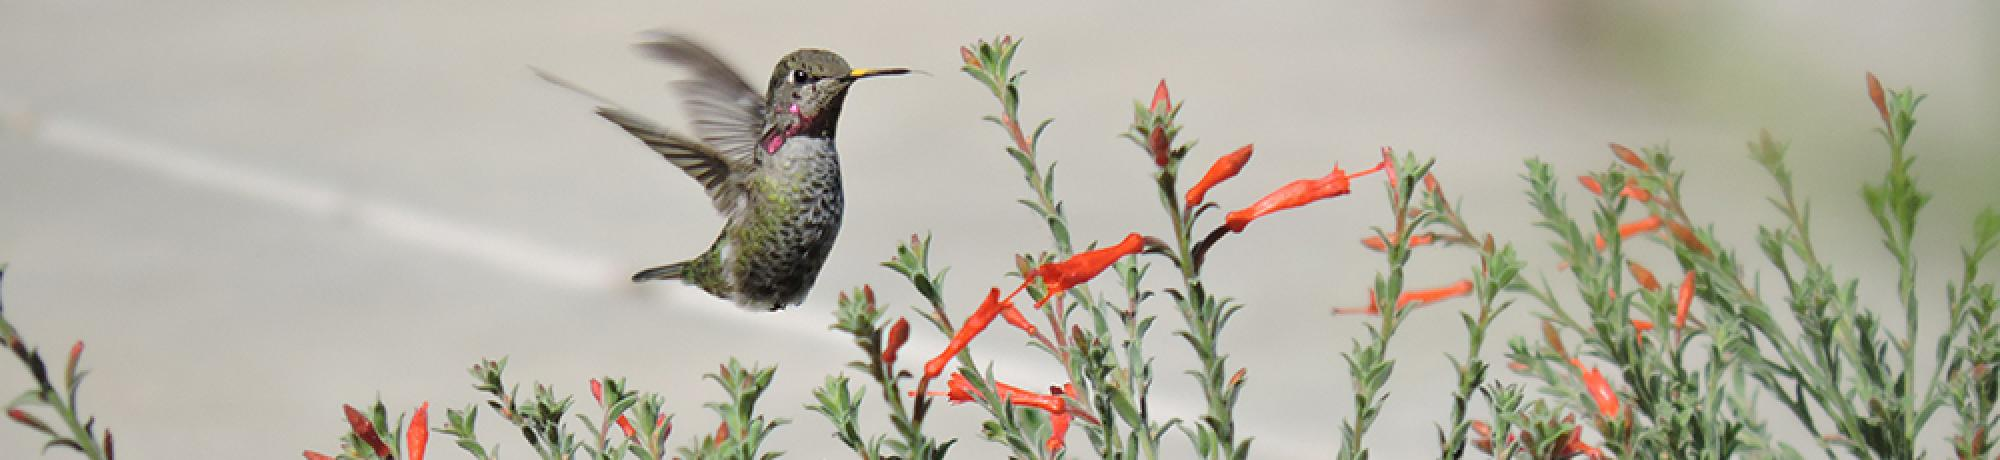 Image of hummingbird grazing in a patch of California fuchsia in the UC Davis Hummingbird GATEway Garden.